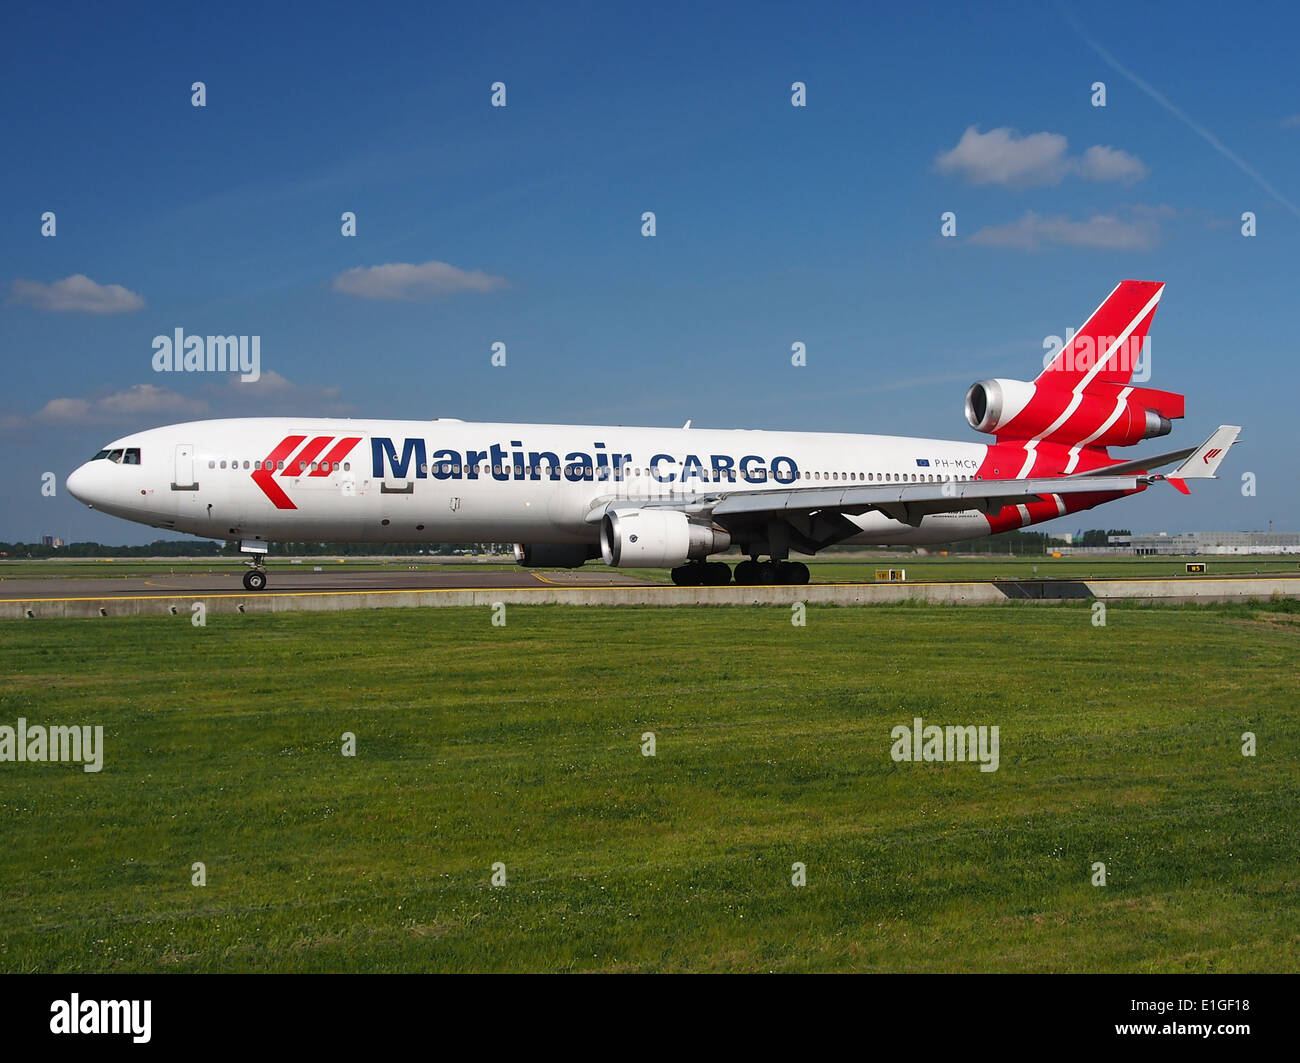 PH-MCR Martinair Holland McDonnell Douglas MD-11CF - cn 48617 at Schiphol (AMS - EHAM), The Netherlands, 16may2014, pic-1 - Stock Image